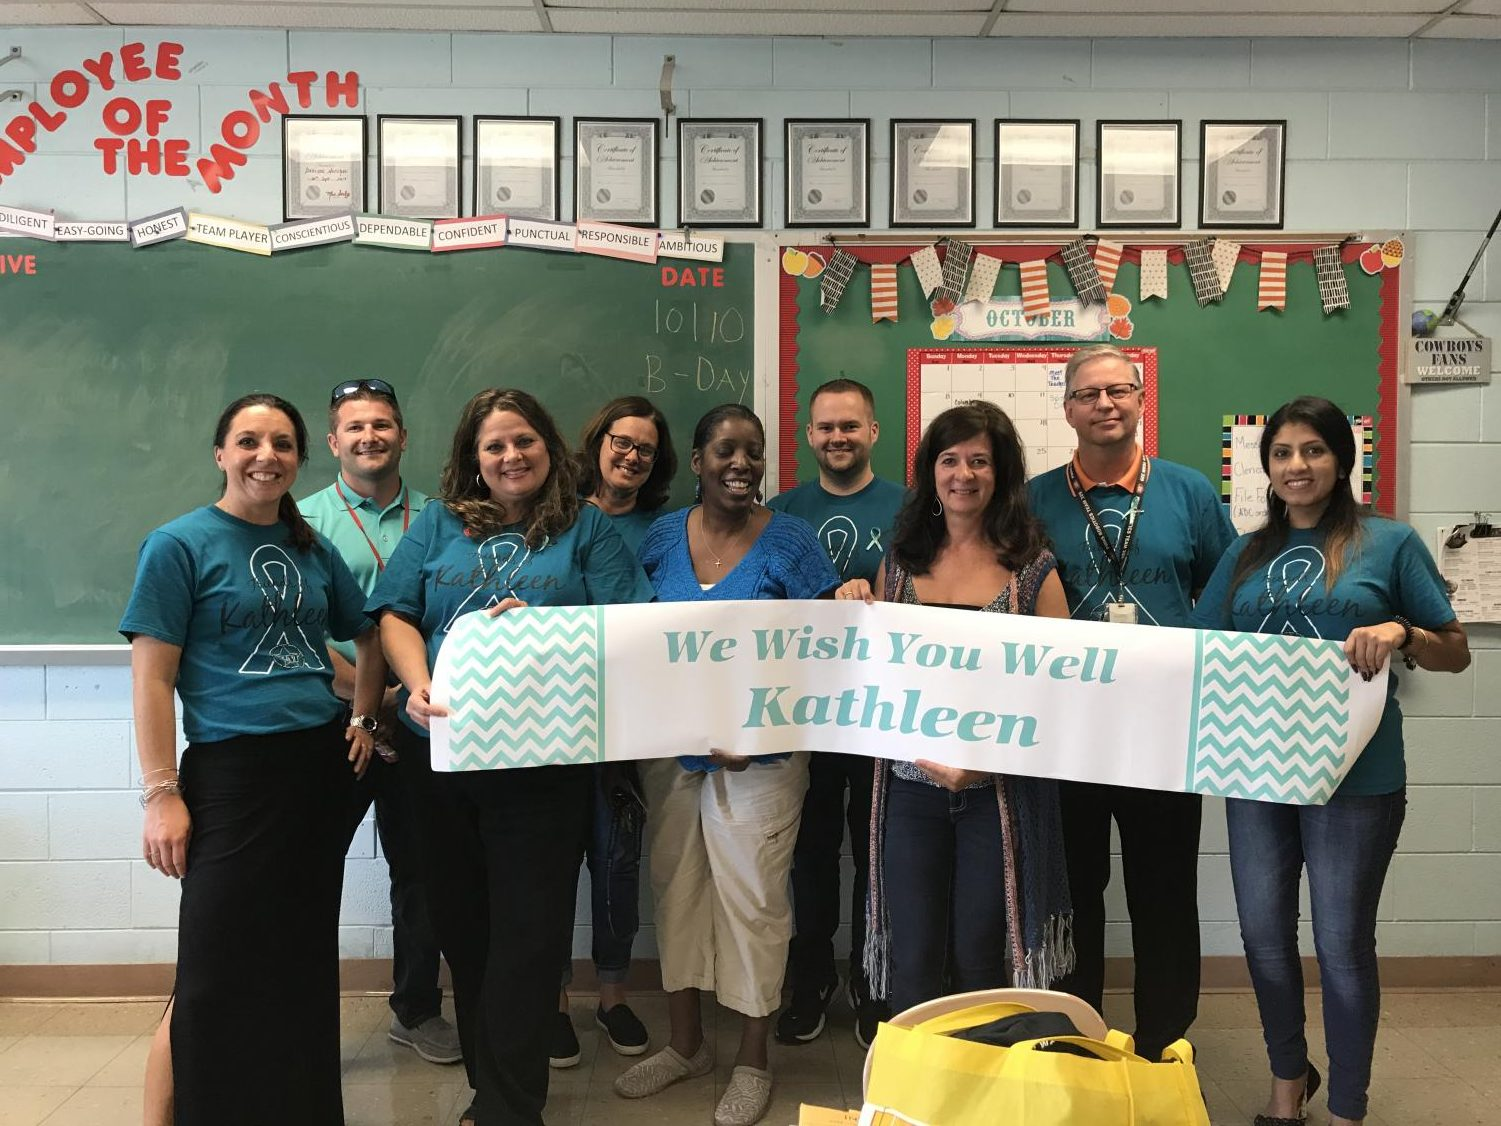 Teachers wear teal to support colleague who suffers from trigeminal neuralgia